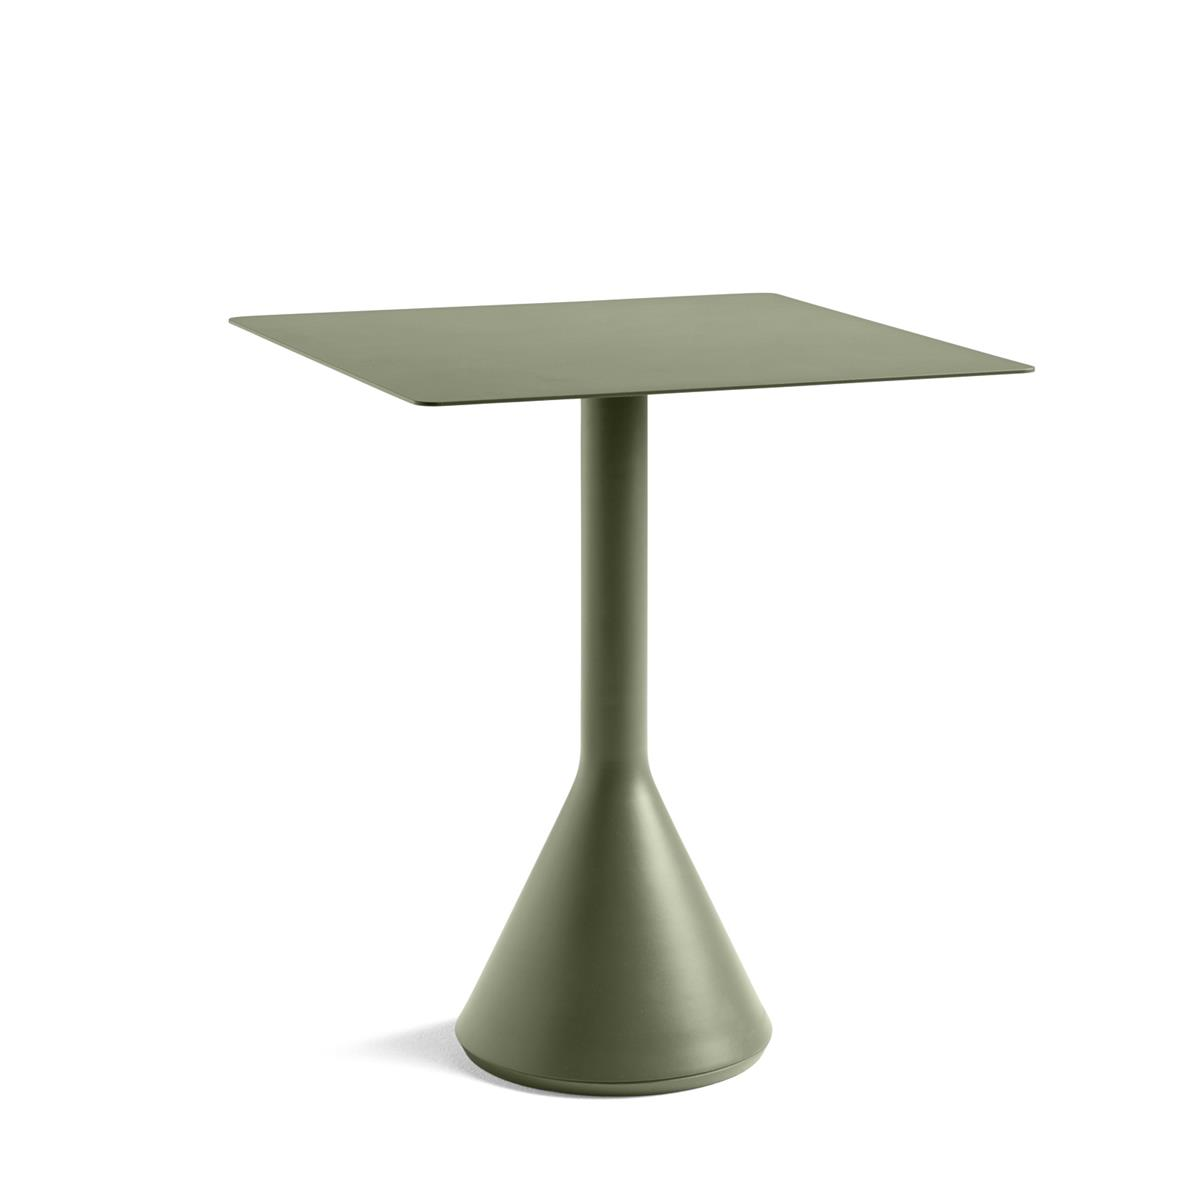 Palissade Cone Table 65 x 65 x H74 - Olive